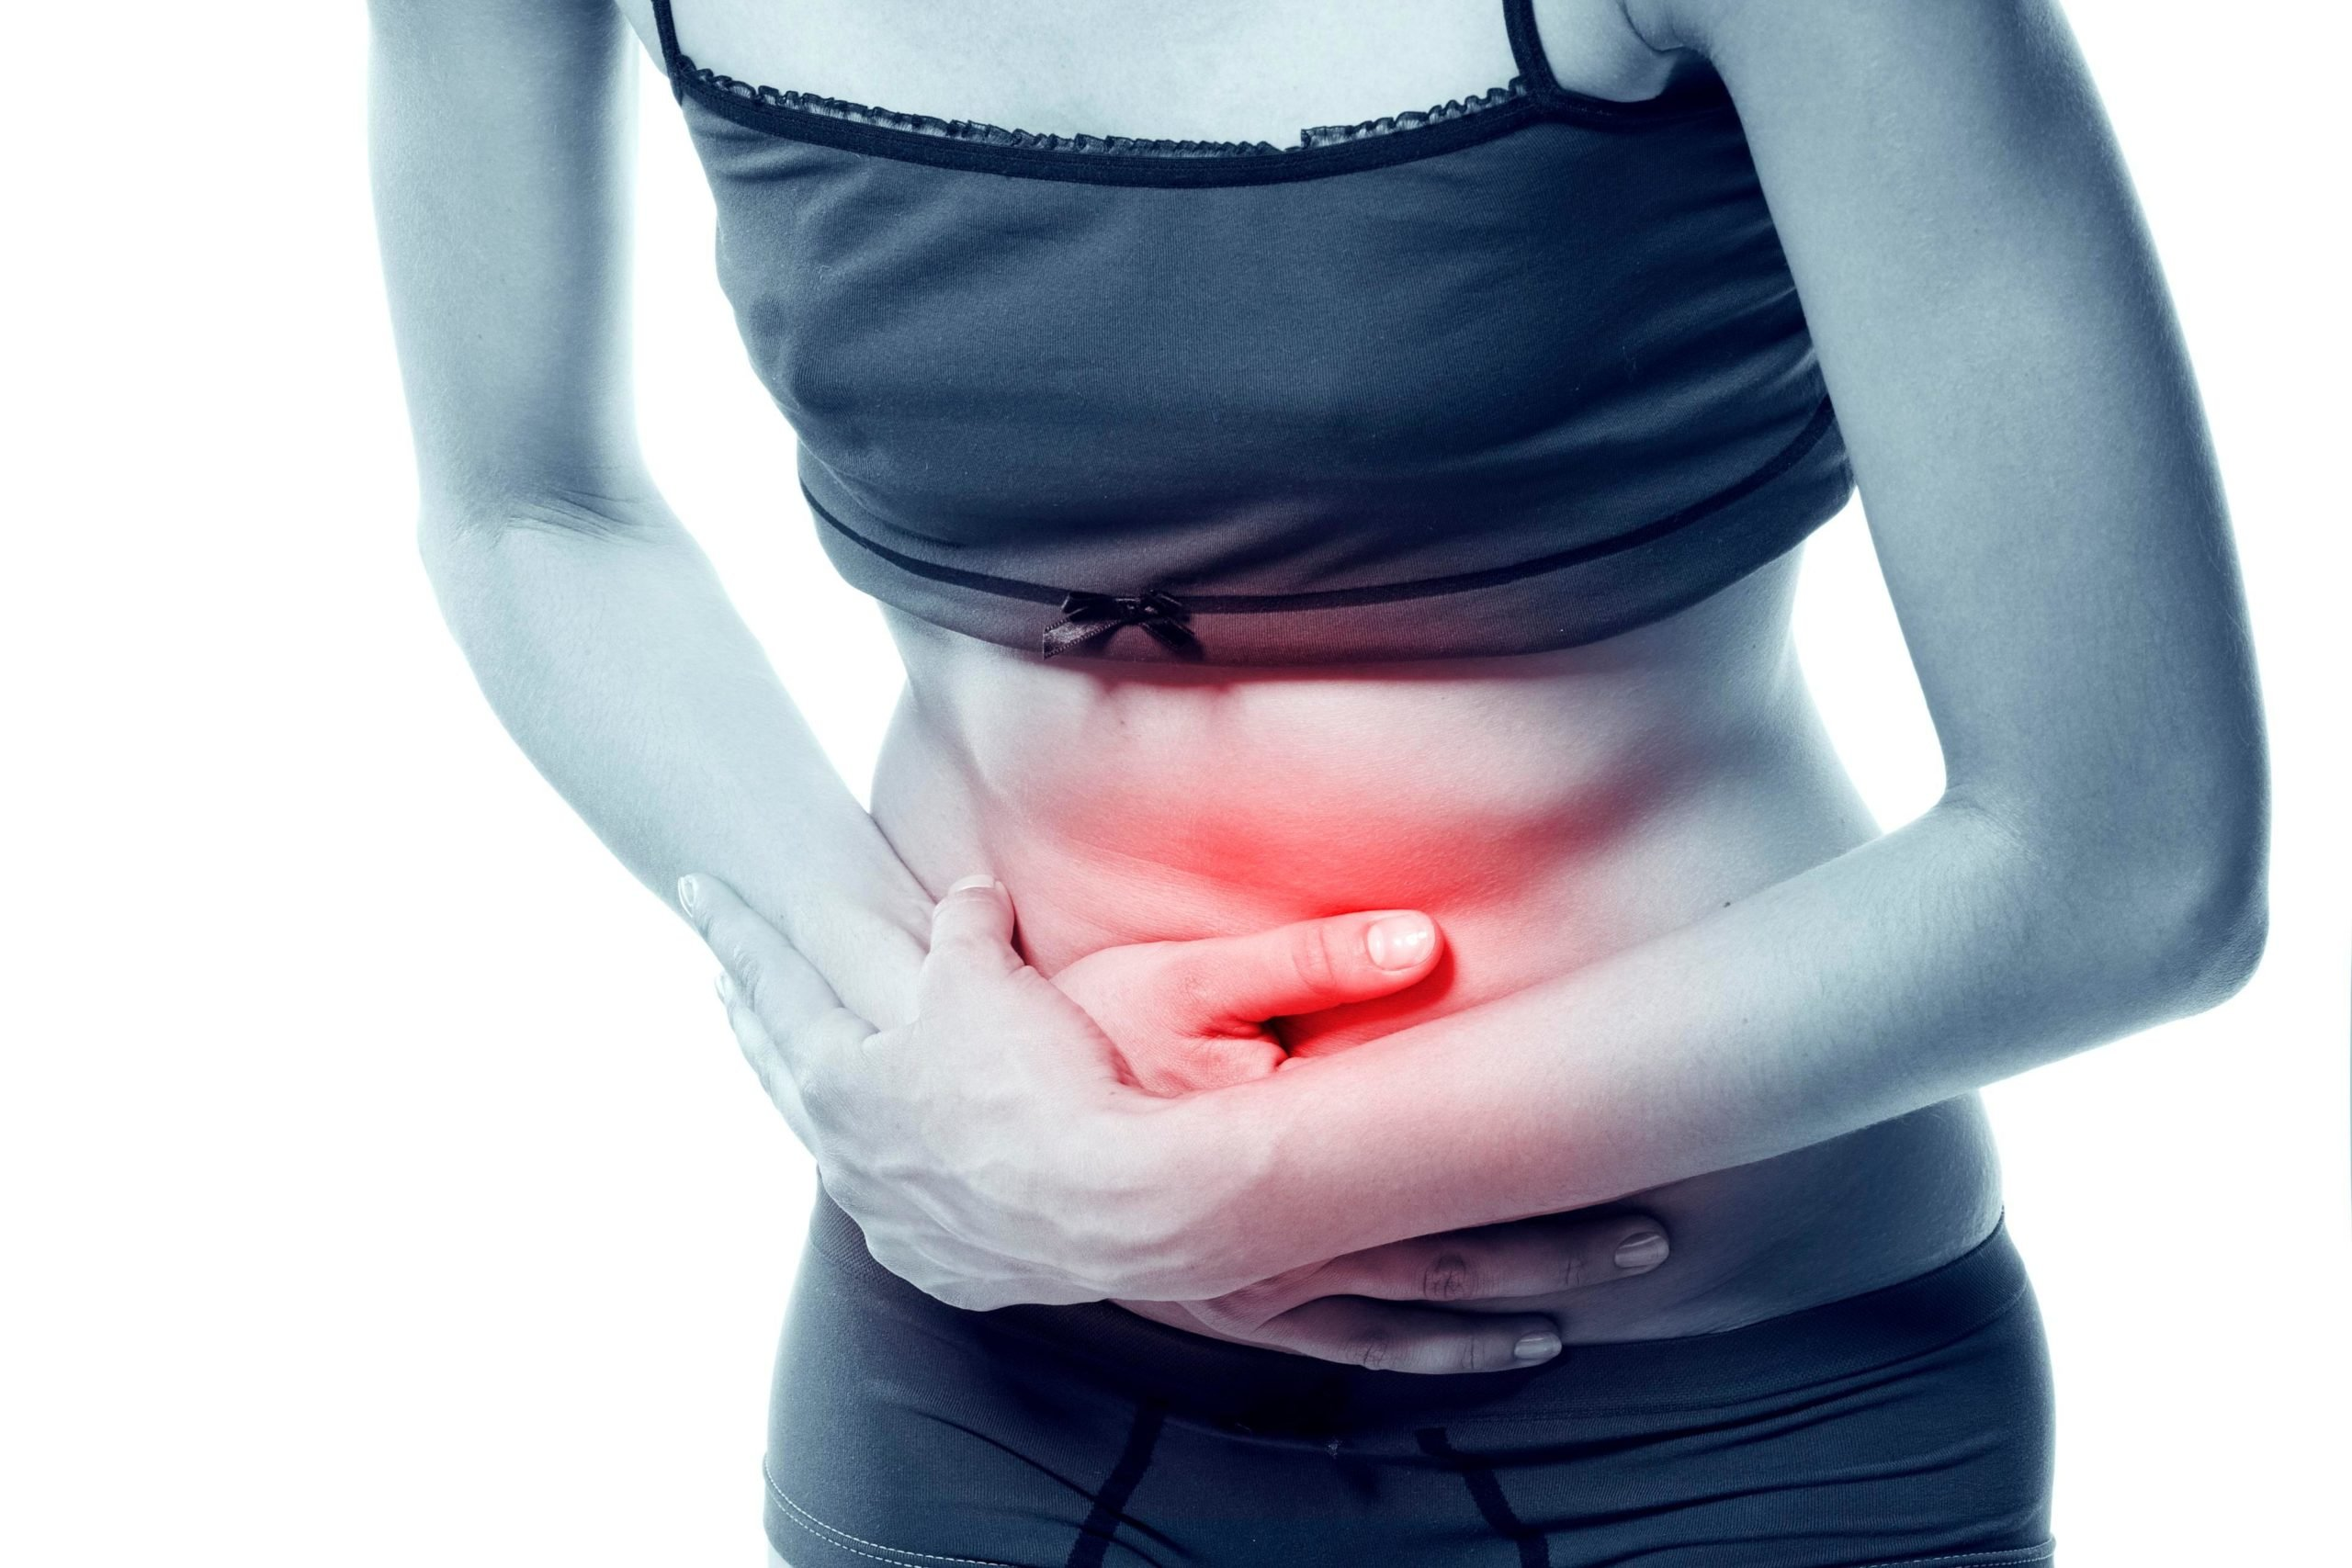 Prolonged Menstruation Accompanied By Lower Abdominal Pain Up To The Pelvis?